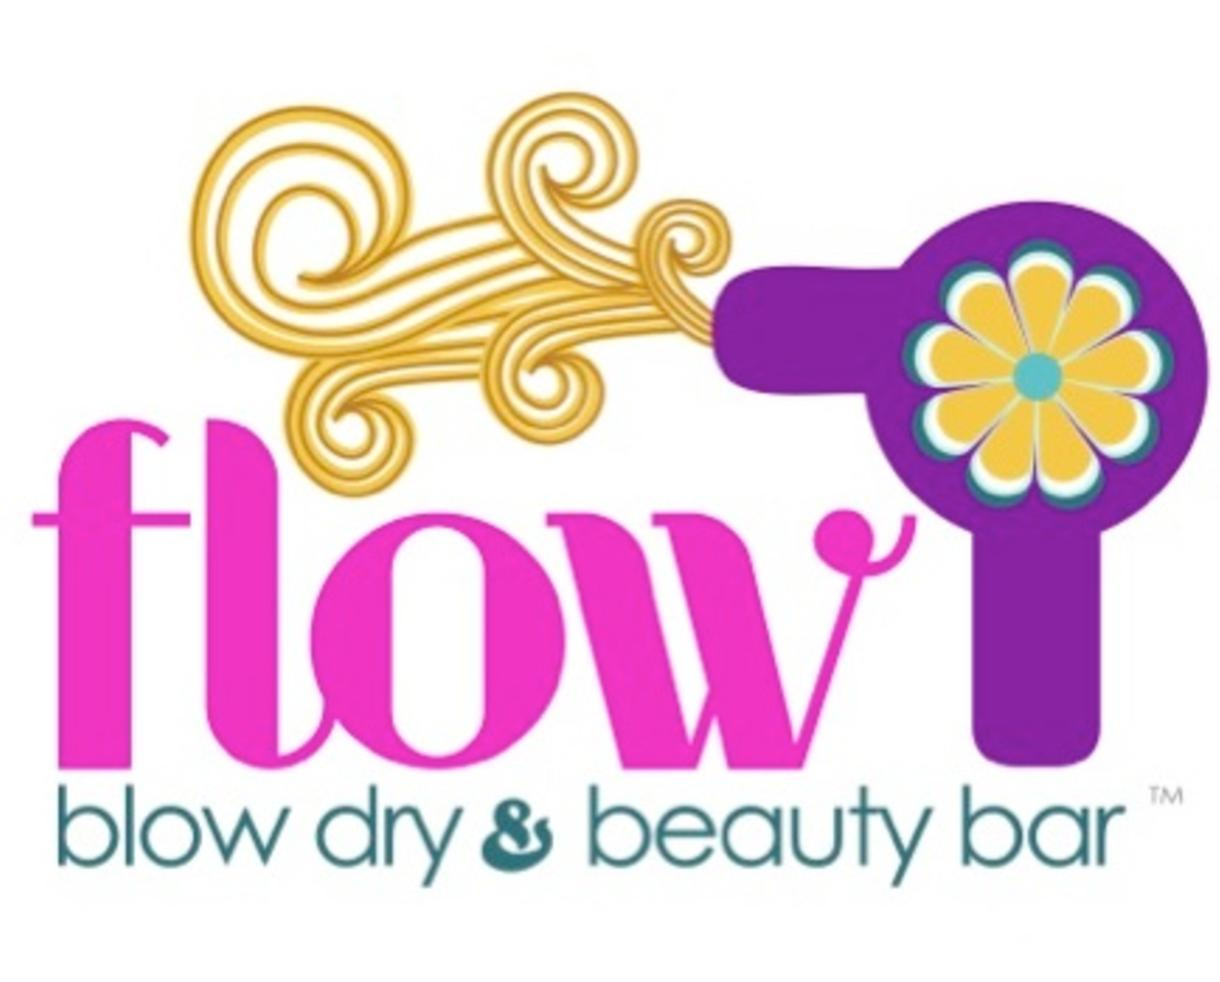 $35 for Blow Dry + Scalp Massage + Deep Conditioning Treatment at FLOW Blow Dry & Beauty Bar - Reston (50% Off)